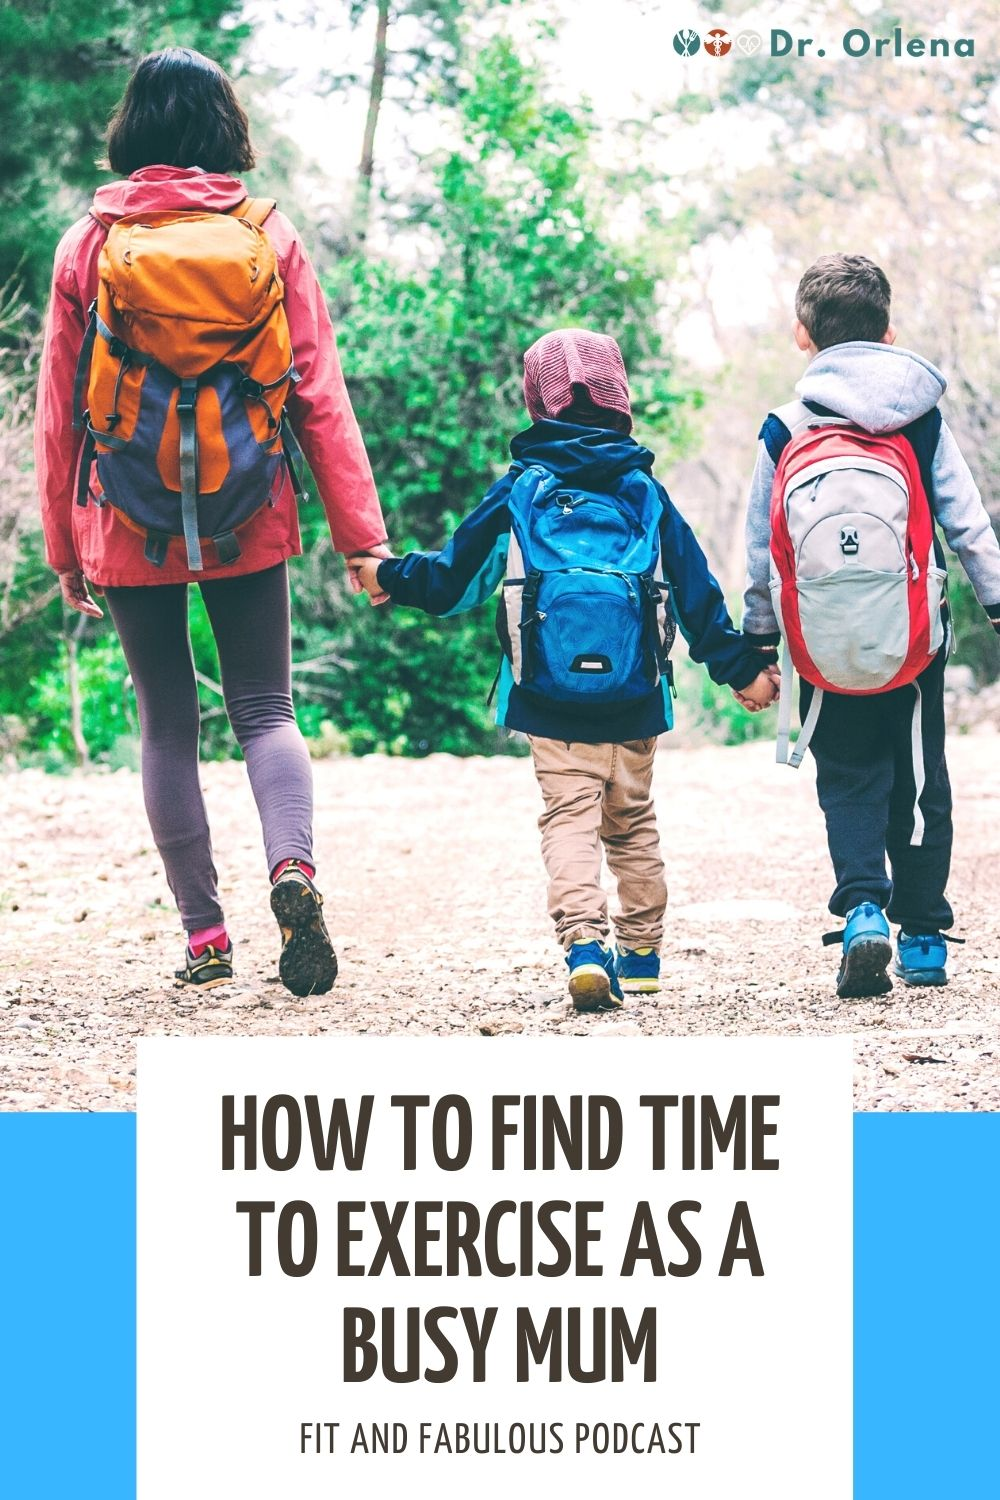 A woman hiking with her kids in the woods #momexercise #momhealth #activemom #healthymom #healthyliving